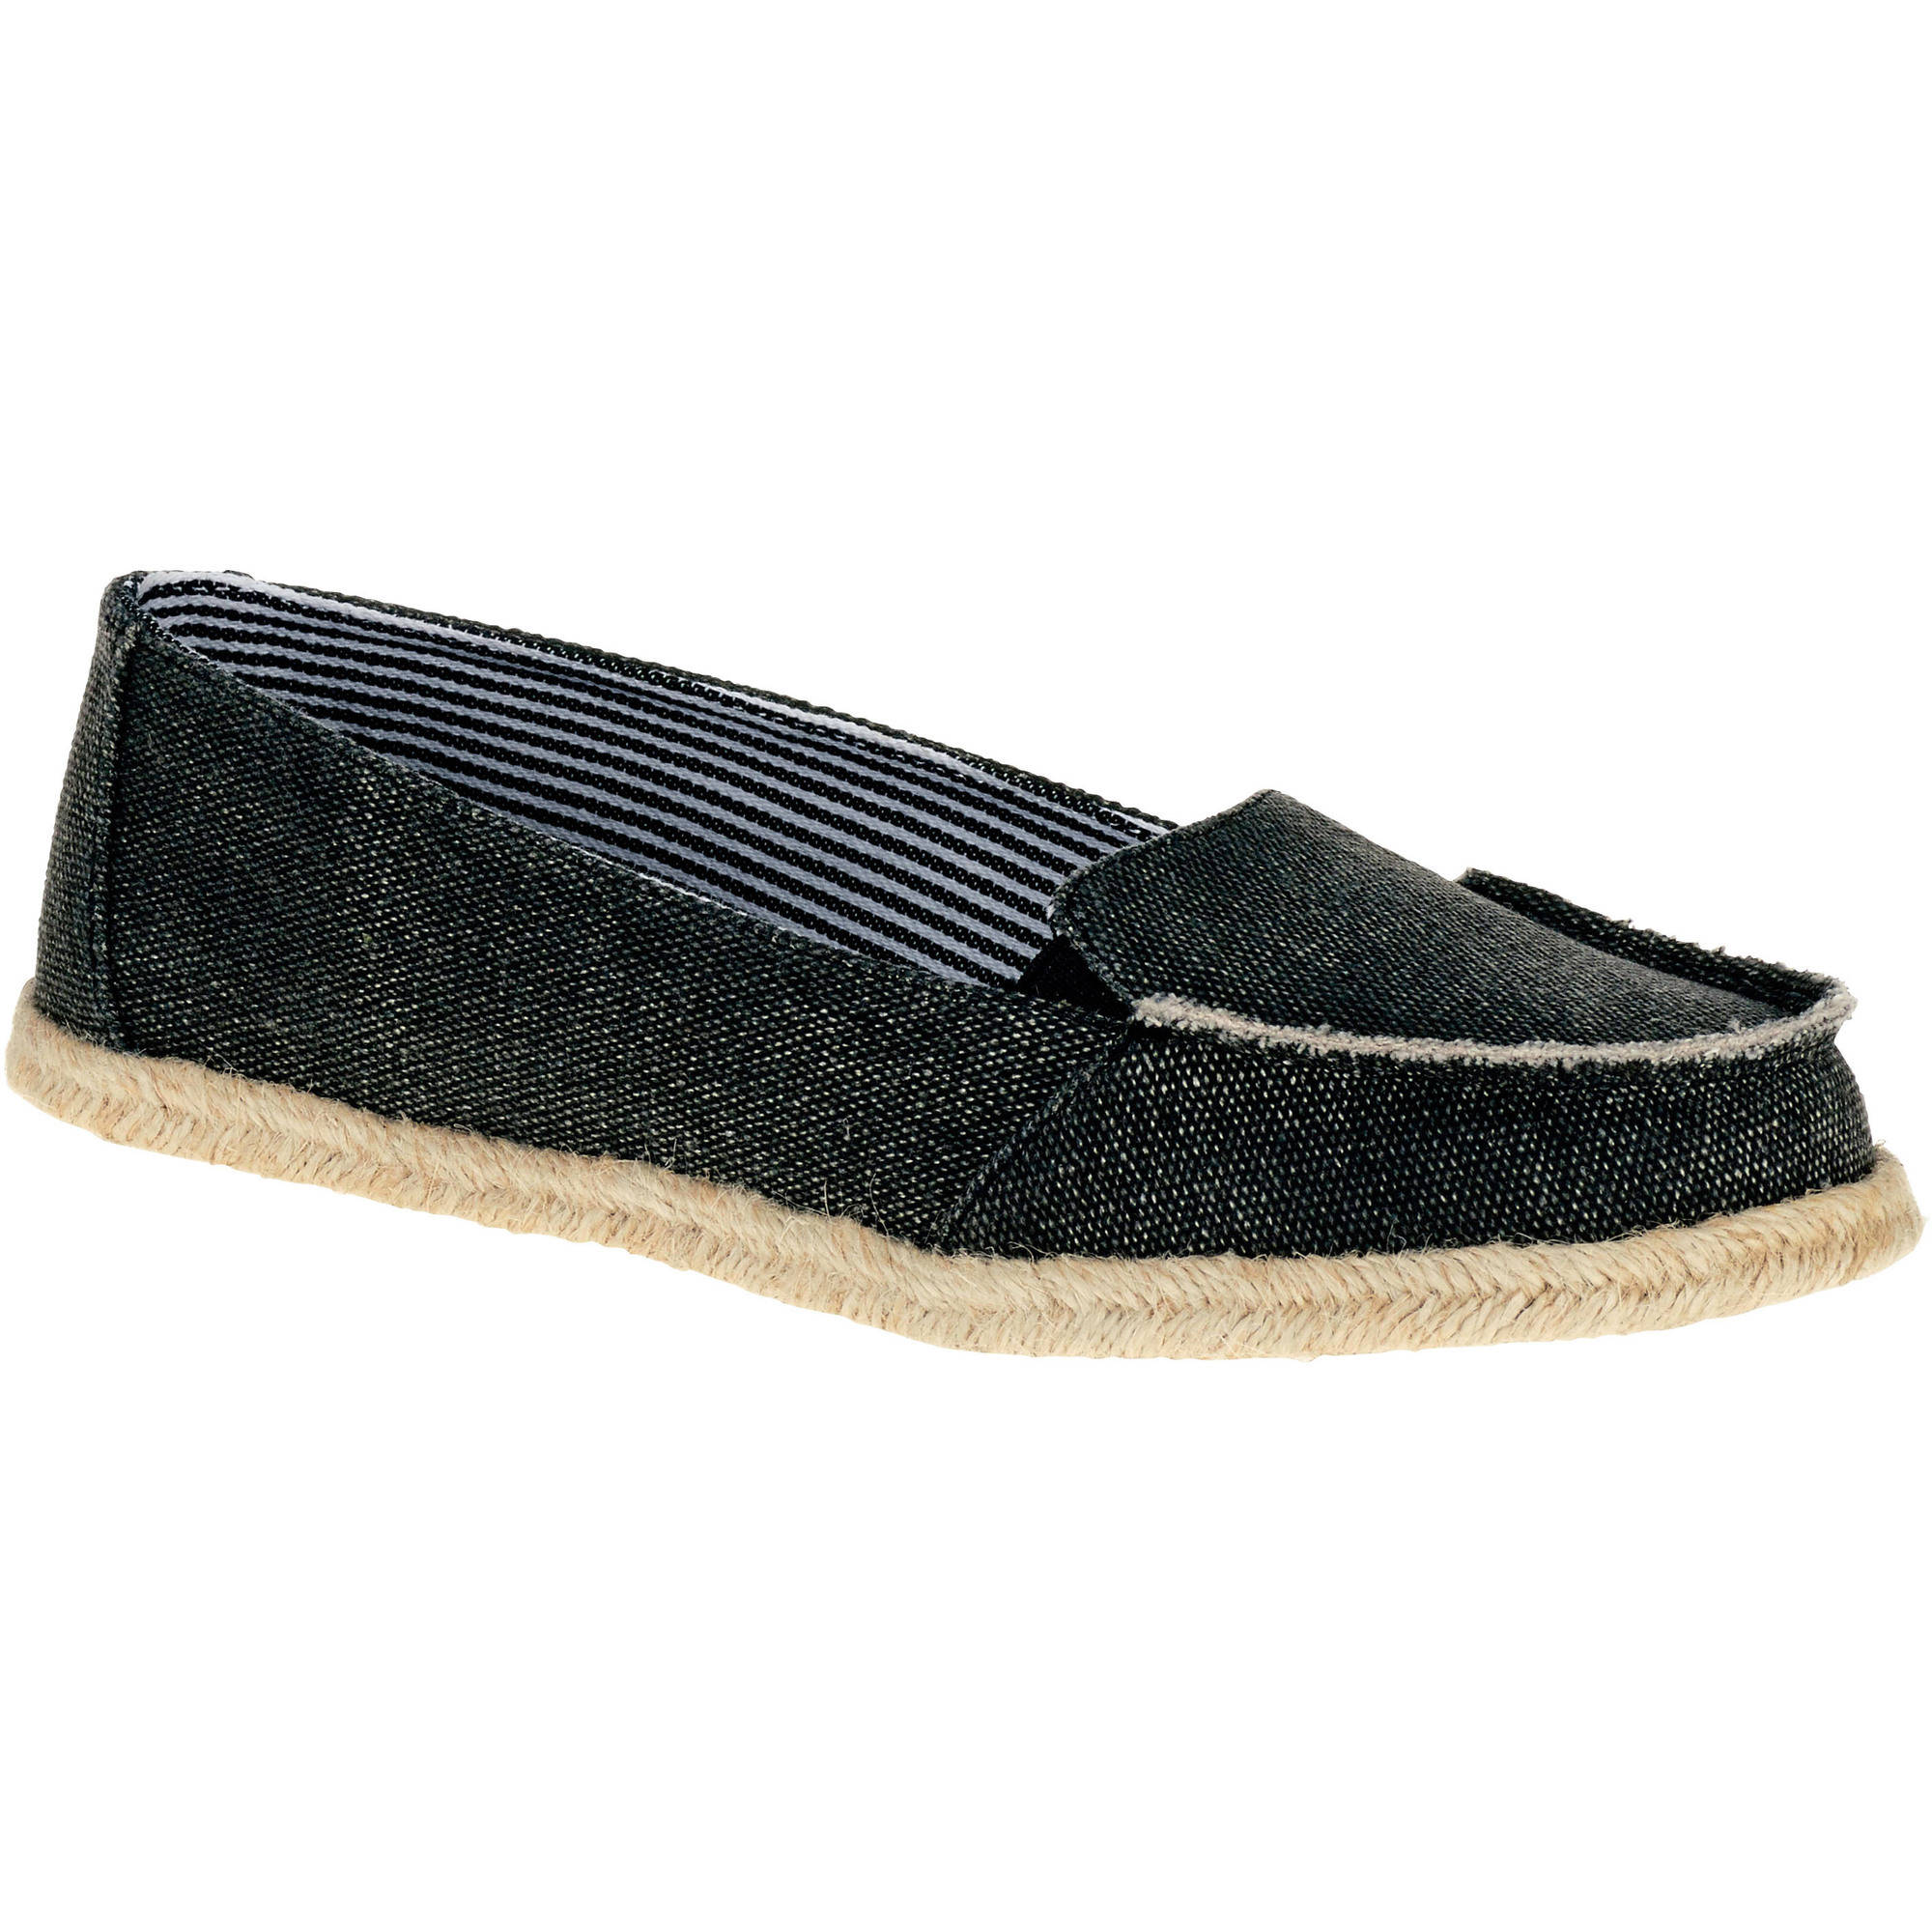 Women's Surfer Moccassin Casual Shoe